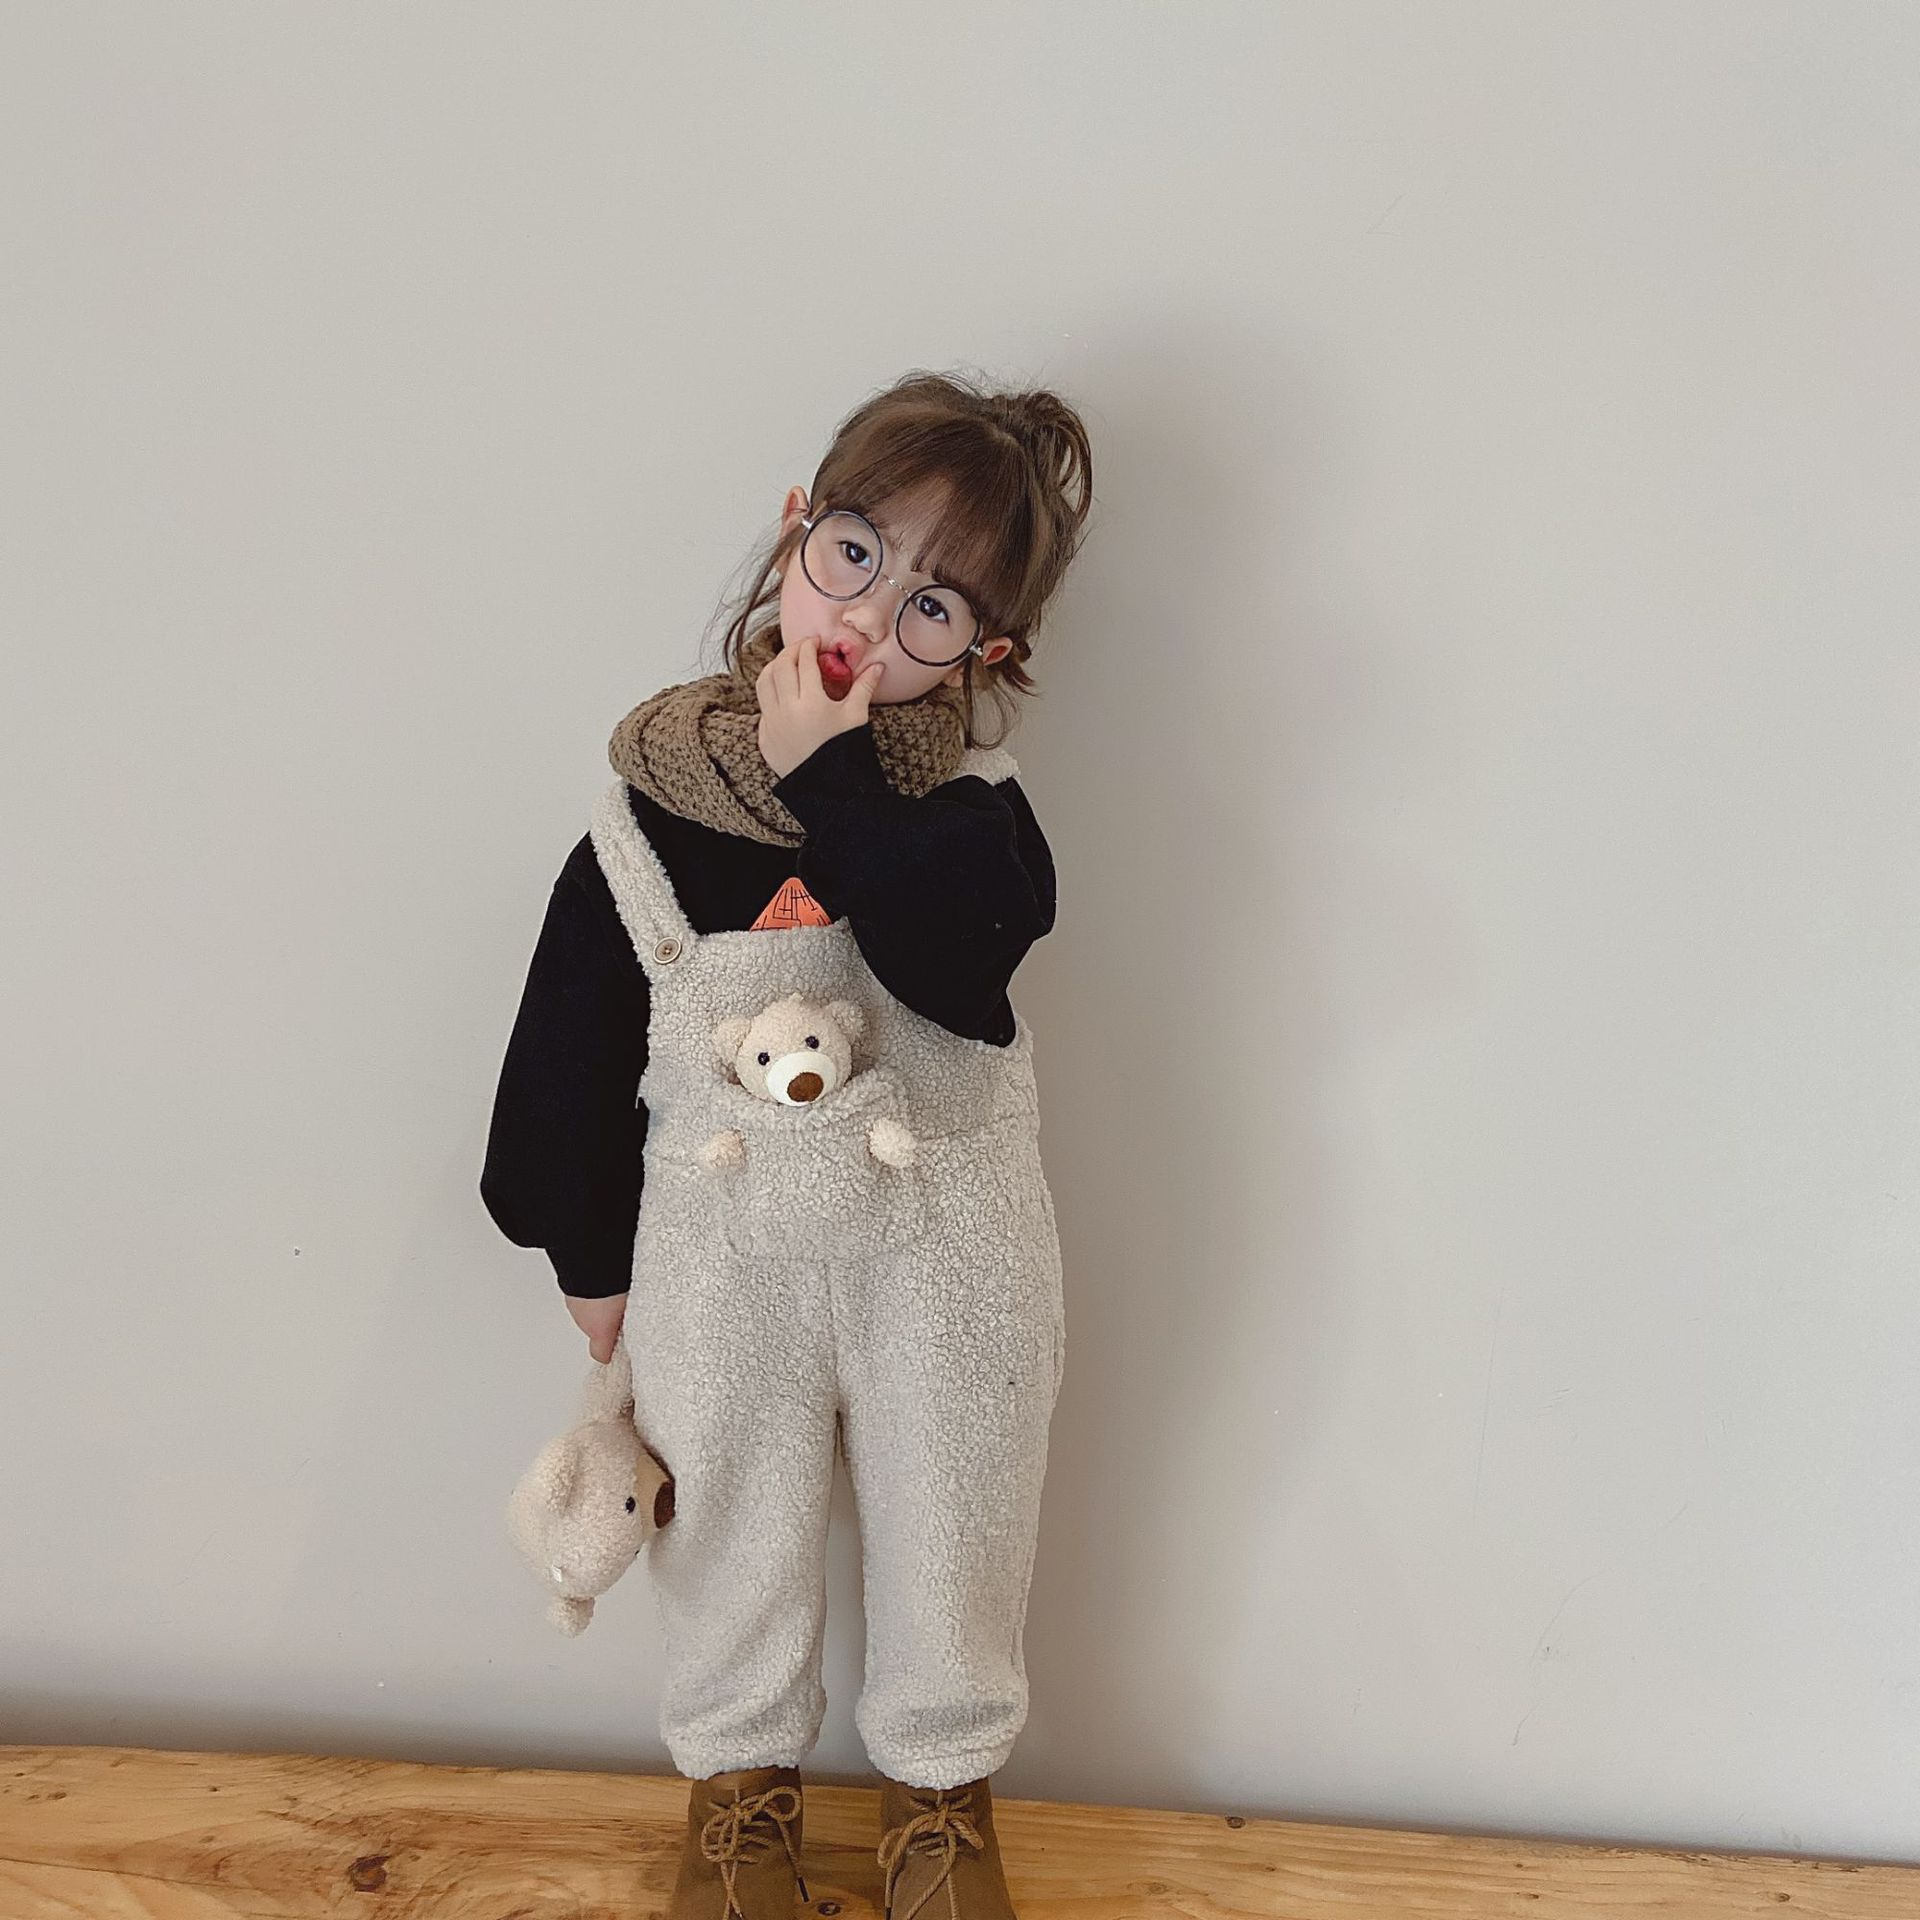 2020 Autumn Winter New Arrival Boys and Girls Warm Cashmere Overalls Kids Cute Overall with Bear 1